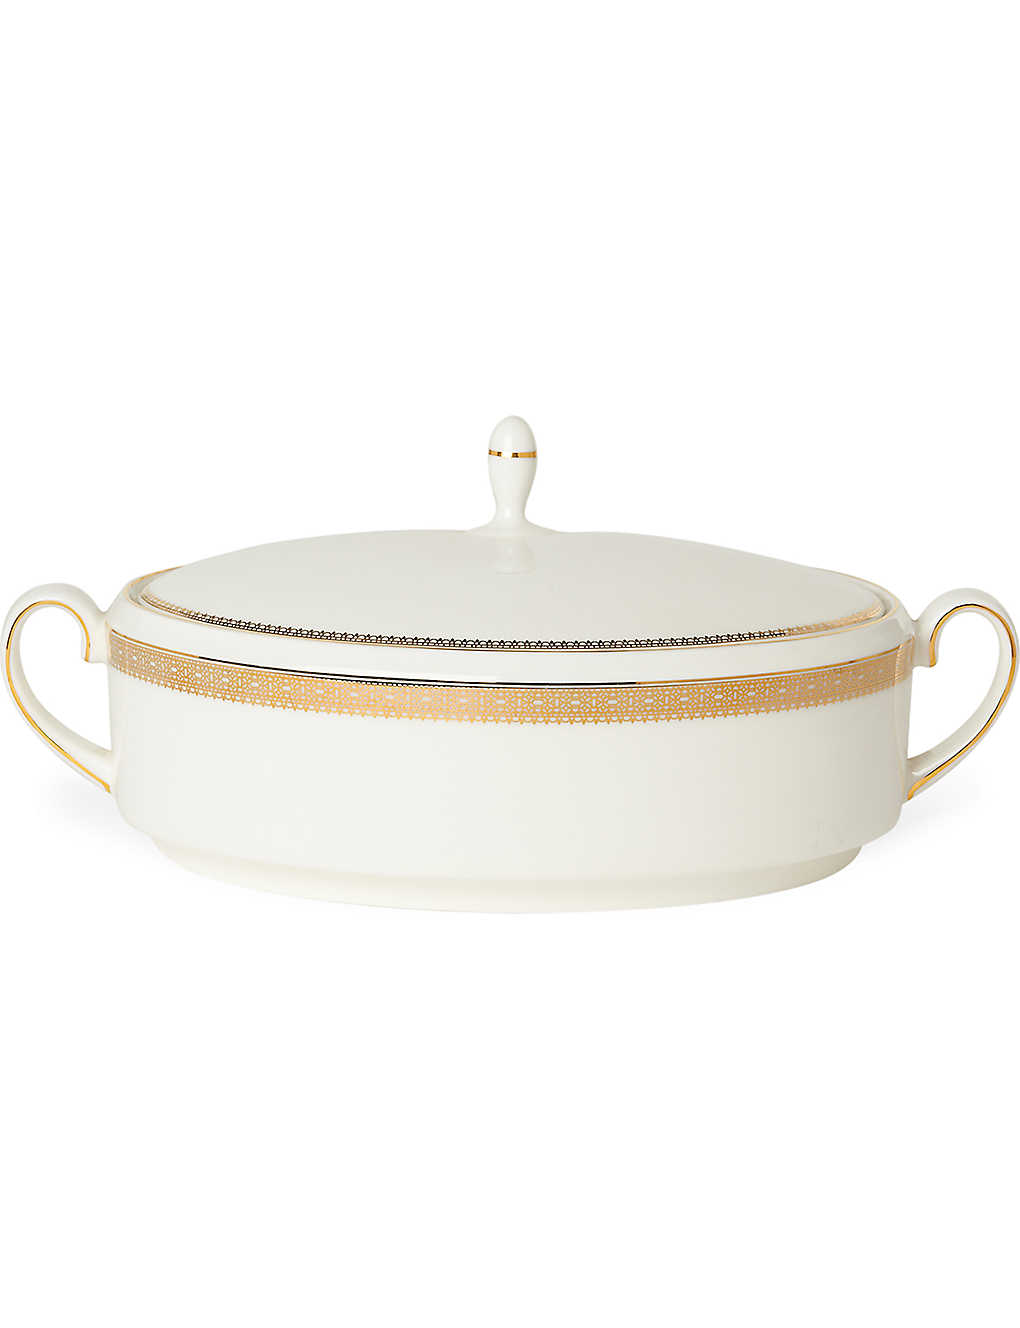 VERA WANG @ WEDGWOOD: Lace Gold covered vegetable dish